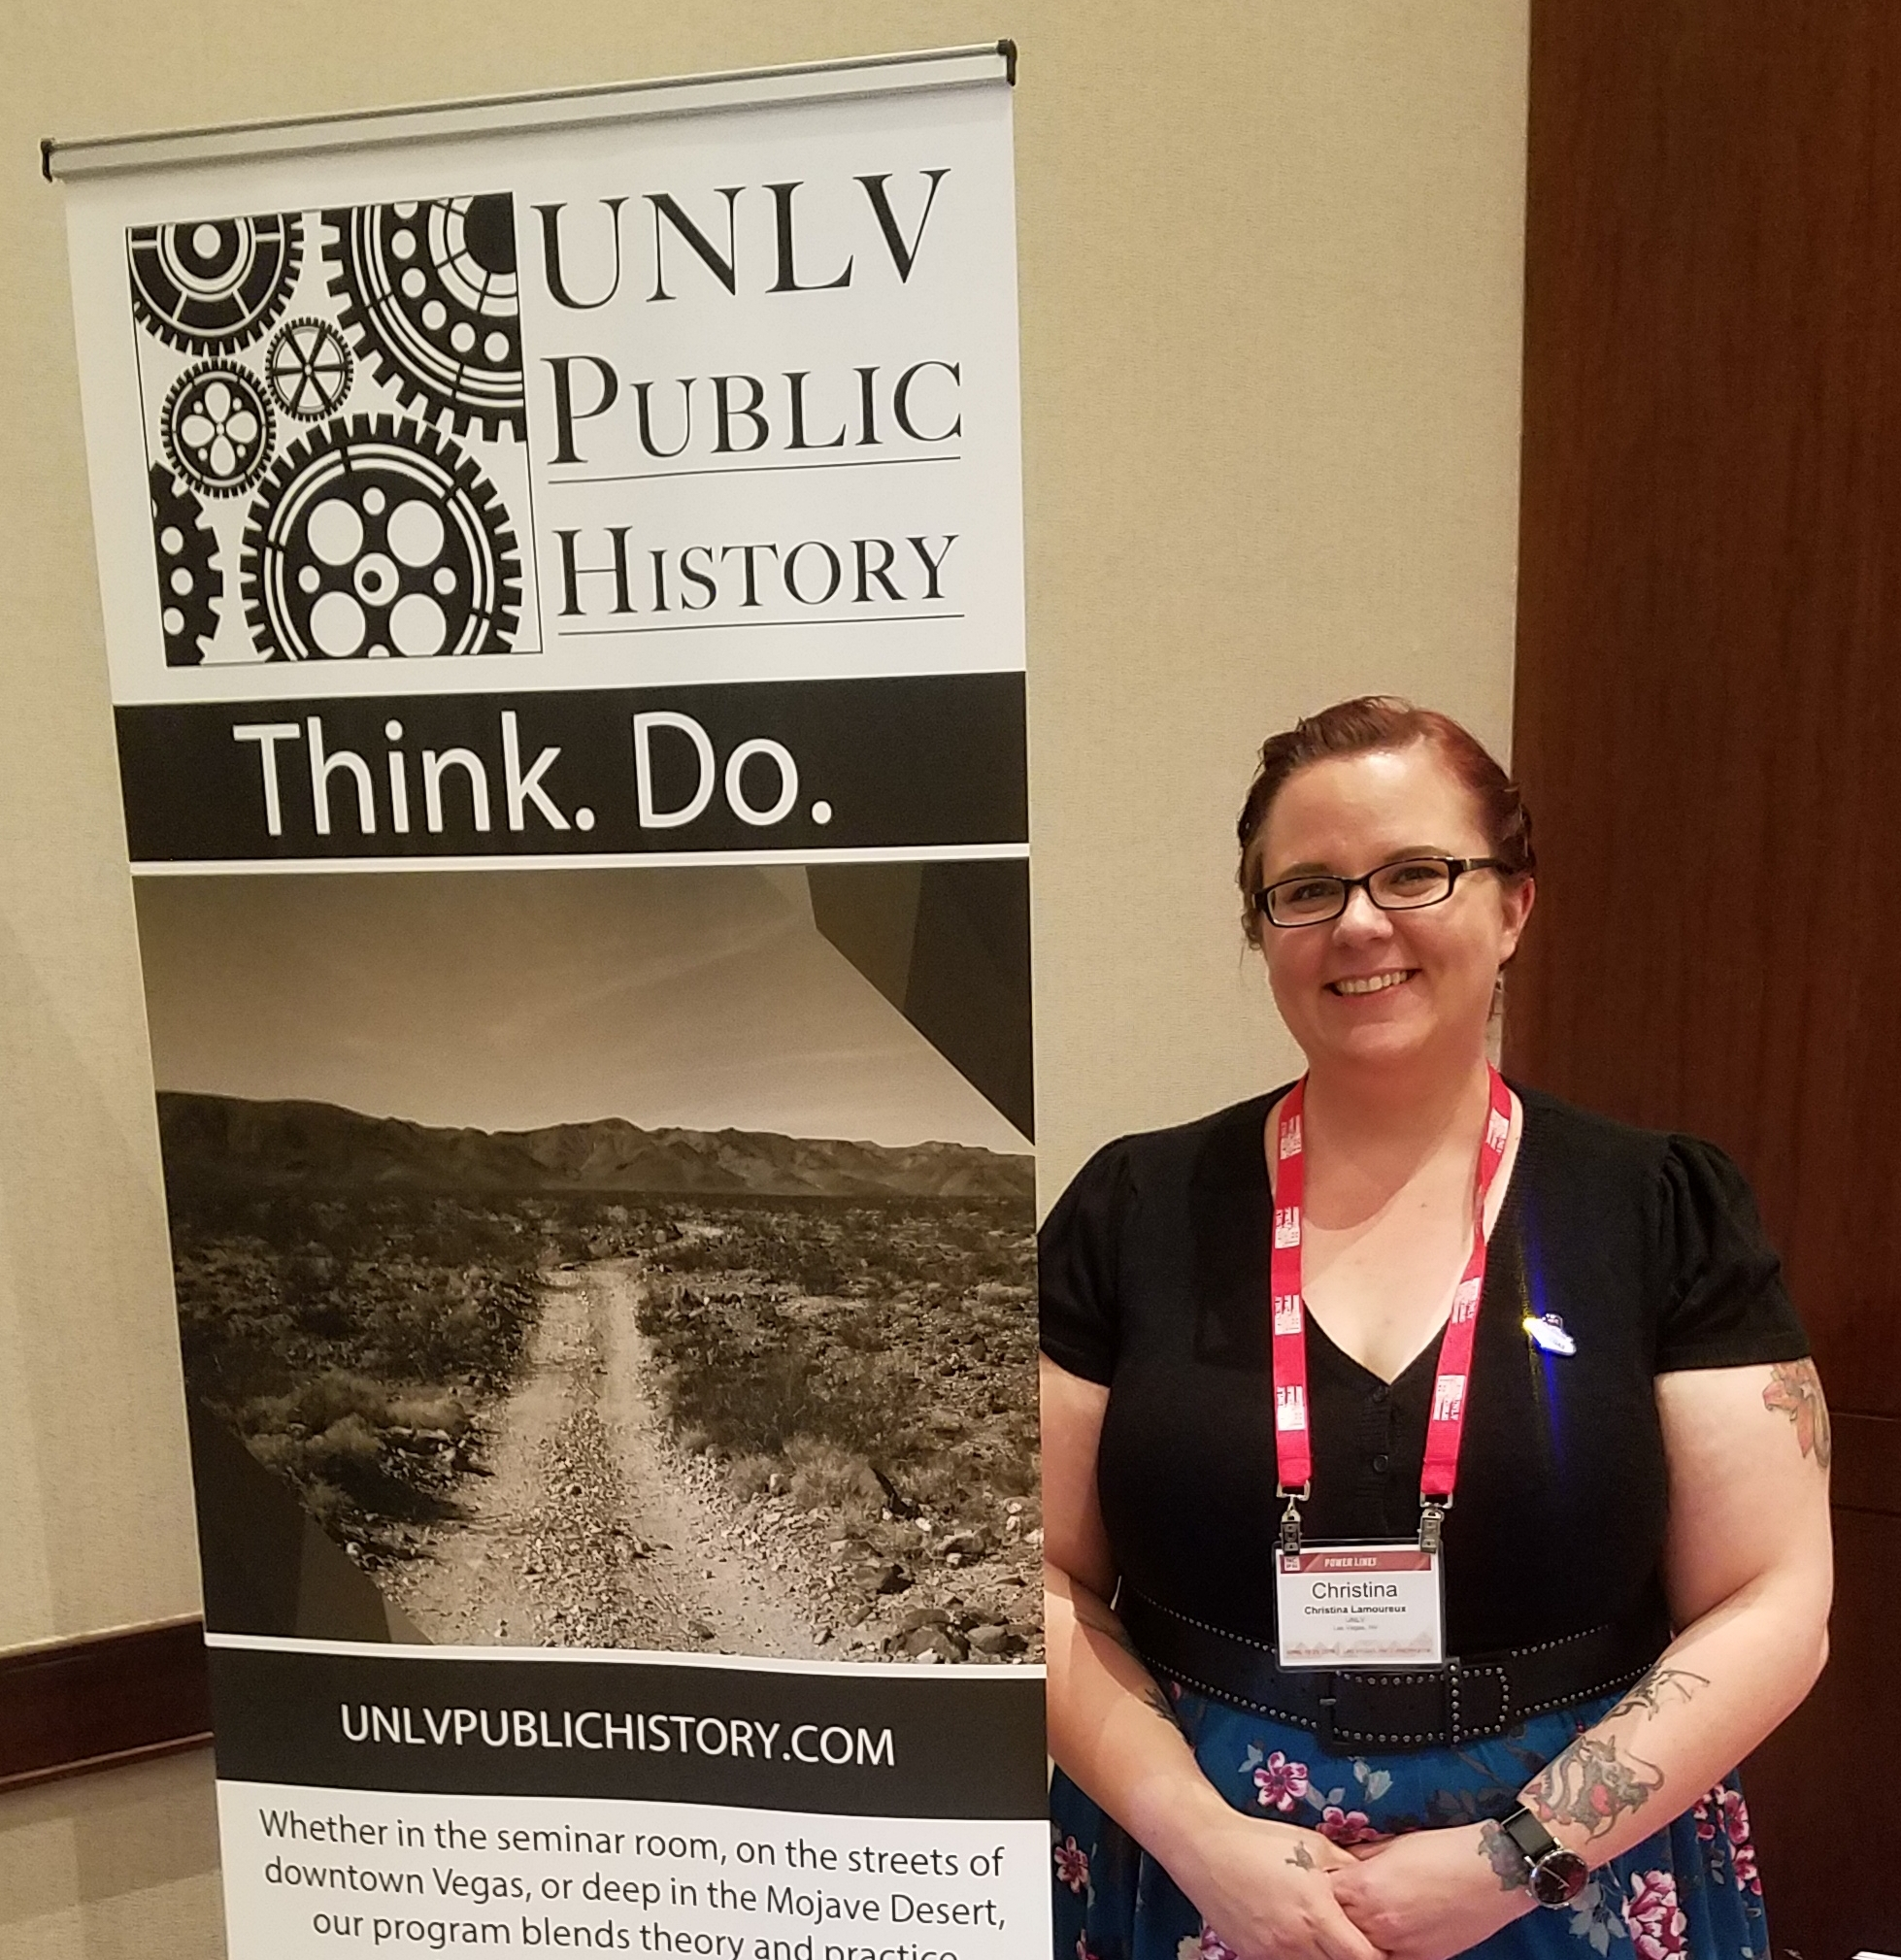 Proudly representing UNLV at the NCPH 2018 Annual Meeting in Las Vegas, NV.